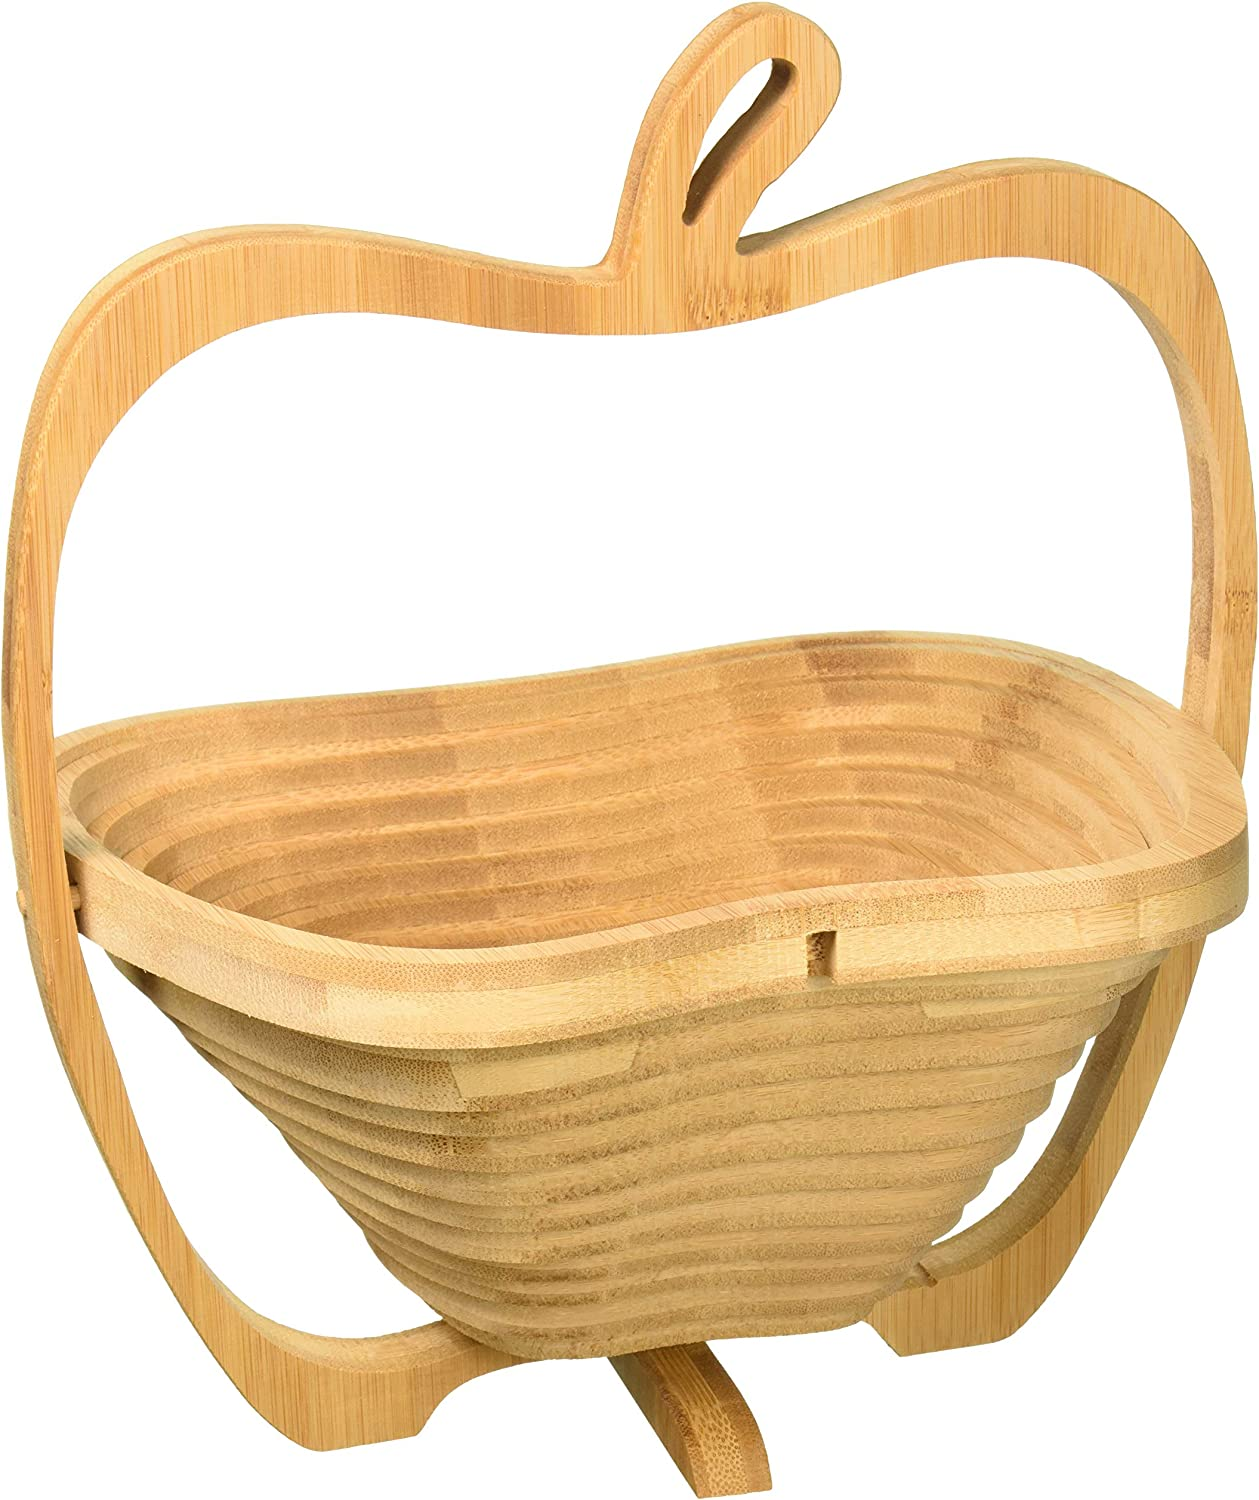 WHAT ON EARTH Collapsible Apple Shaped Bamboo Basket - Kitchen Fruit Centerpiece Bowl Decor.